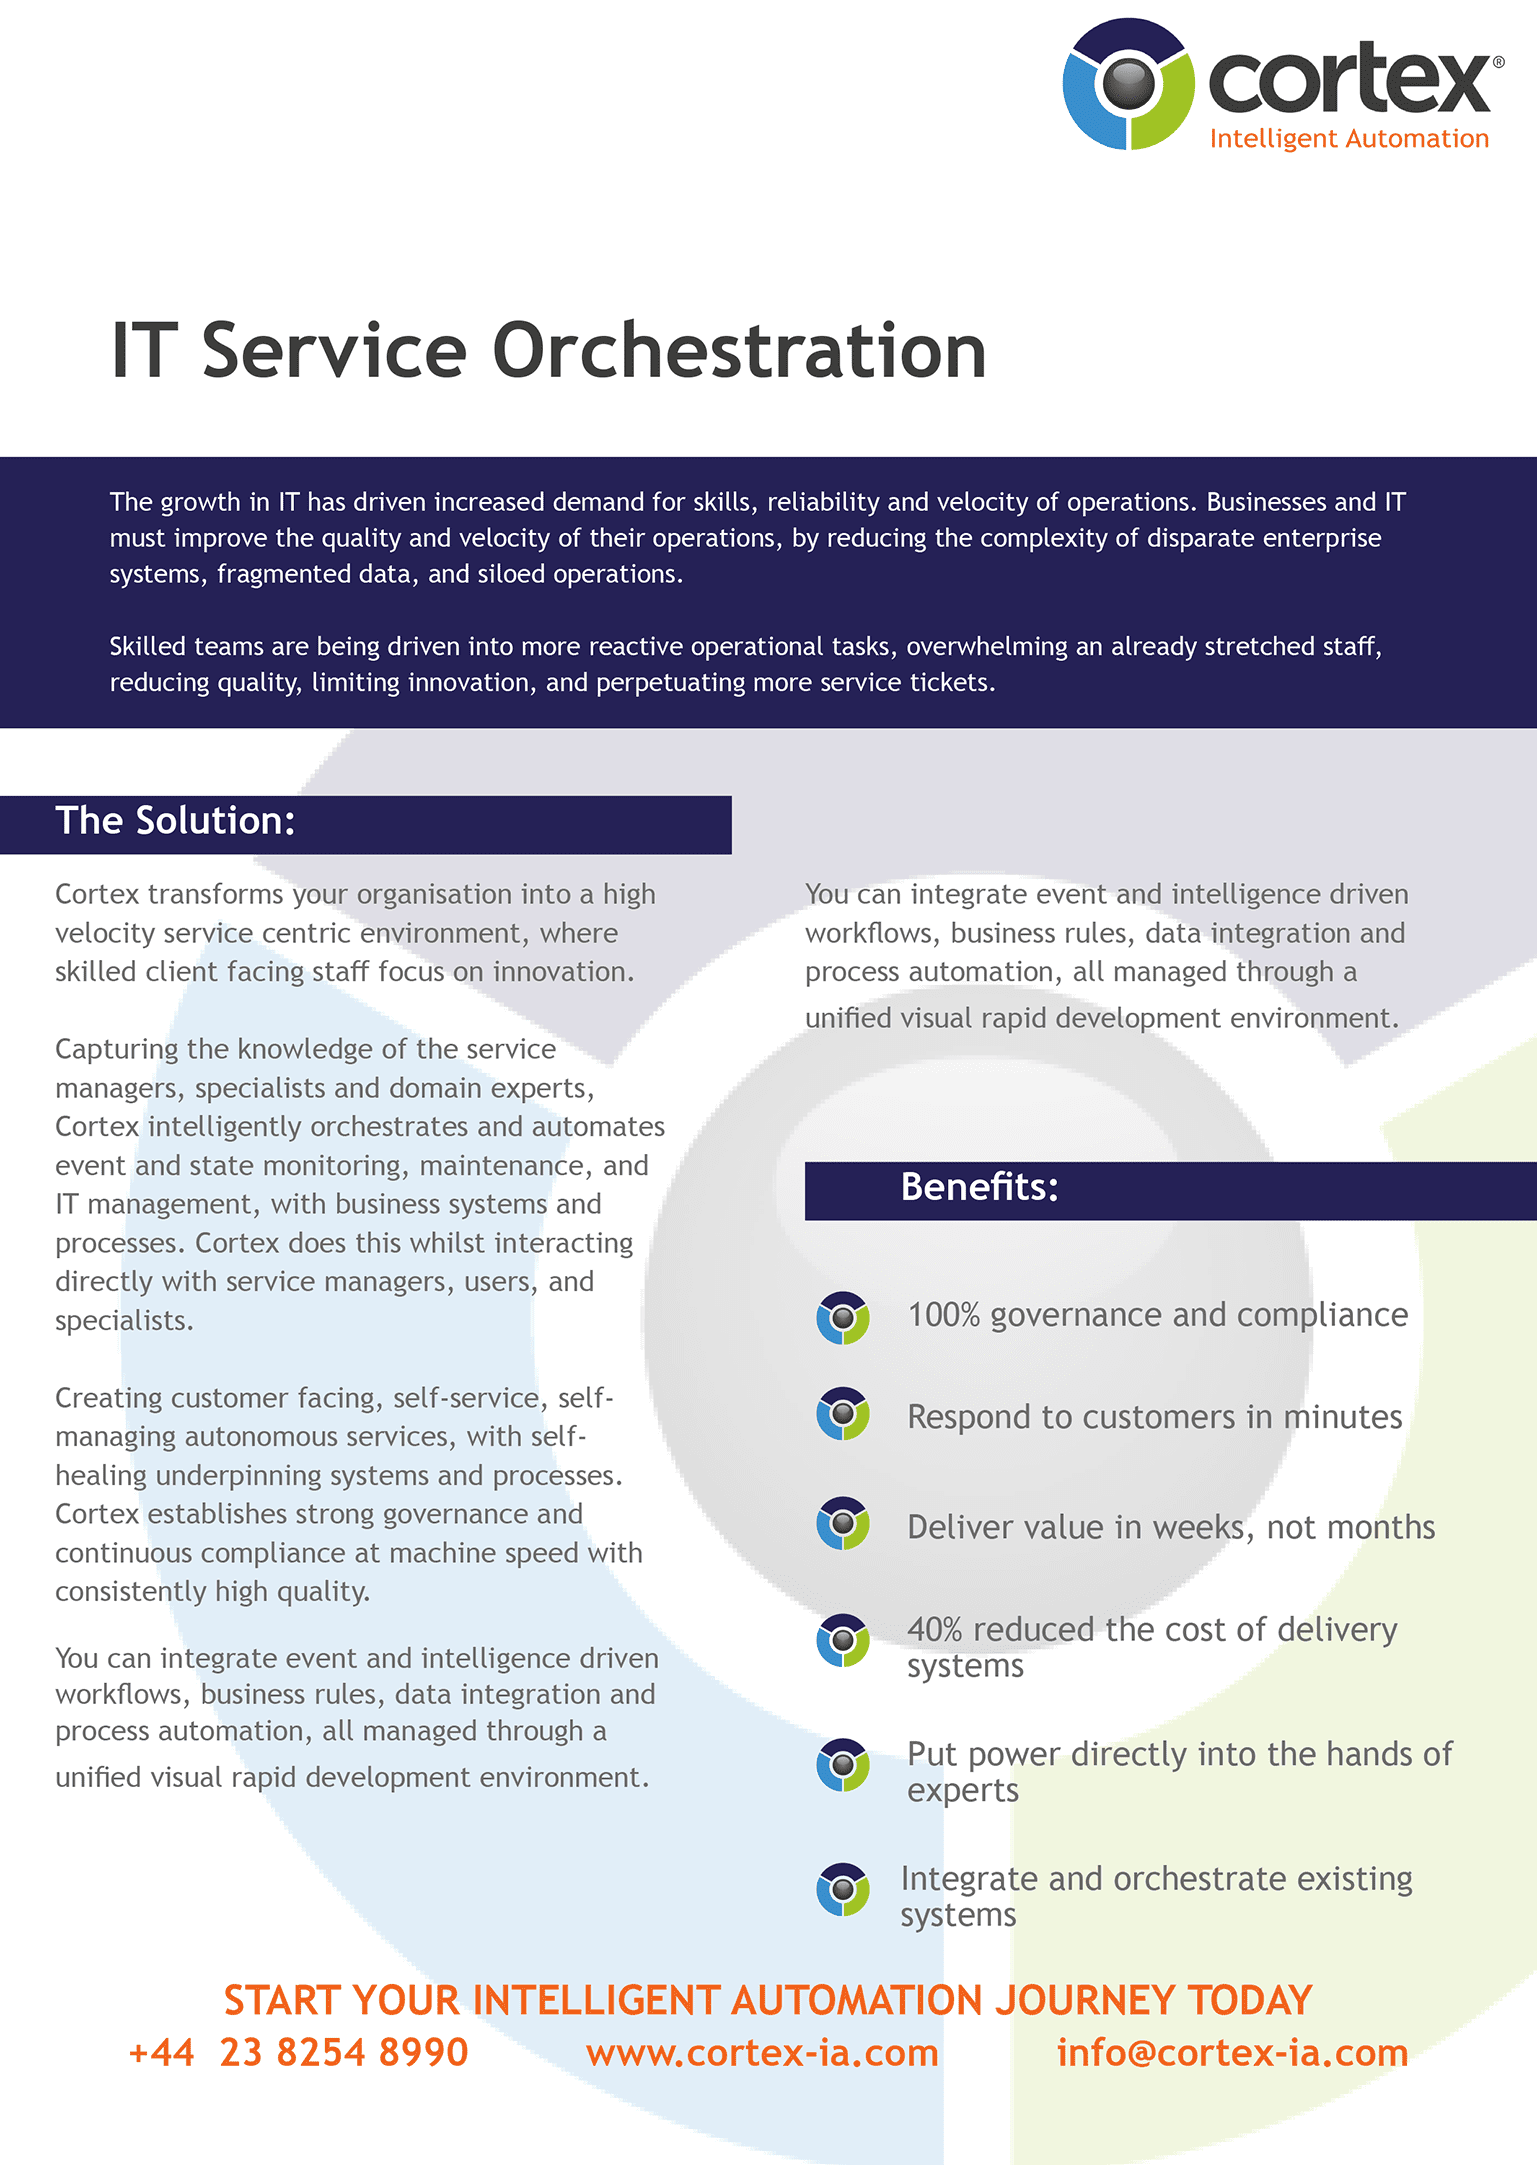 Cortex IT Service Orchestration Overview